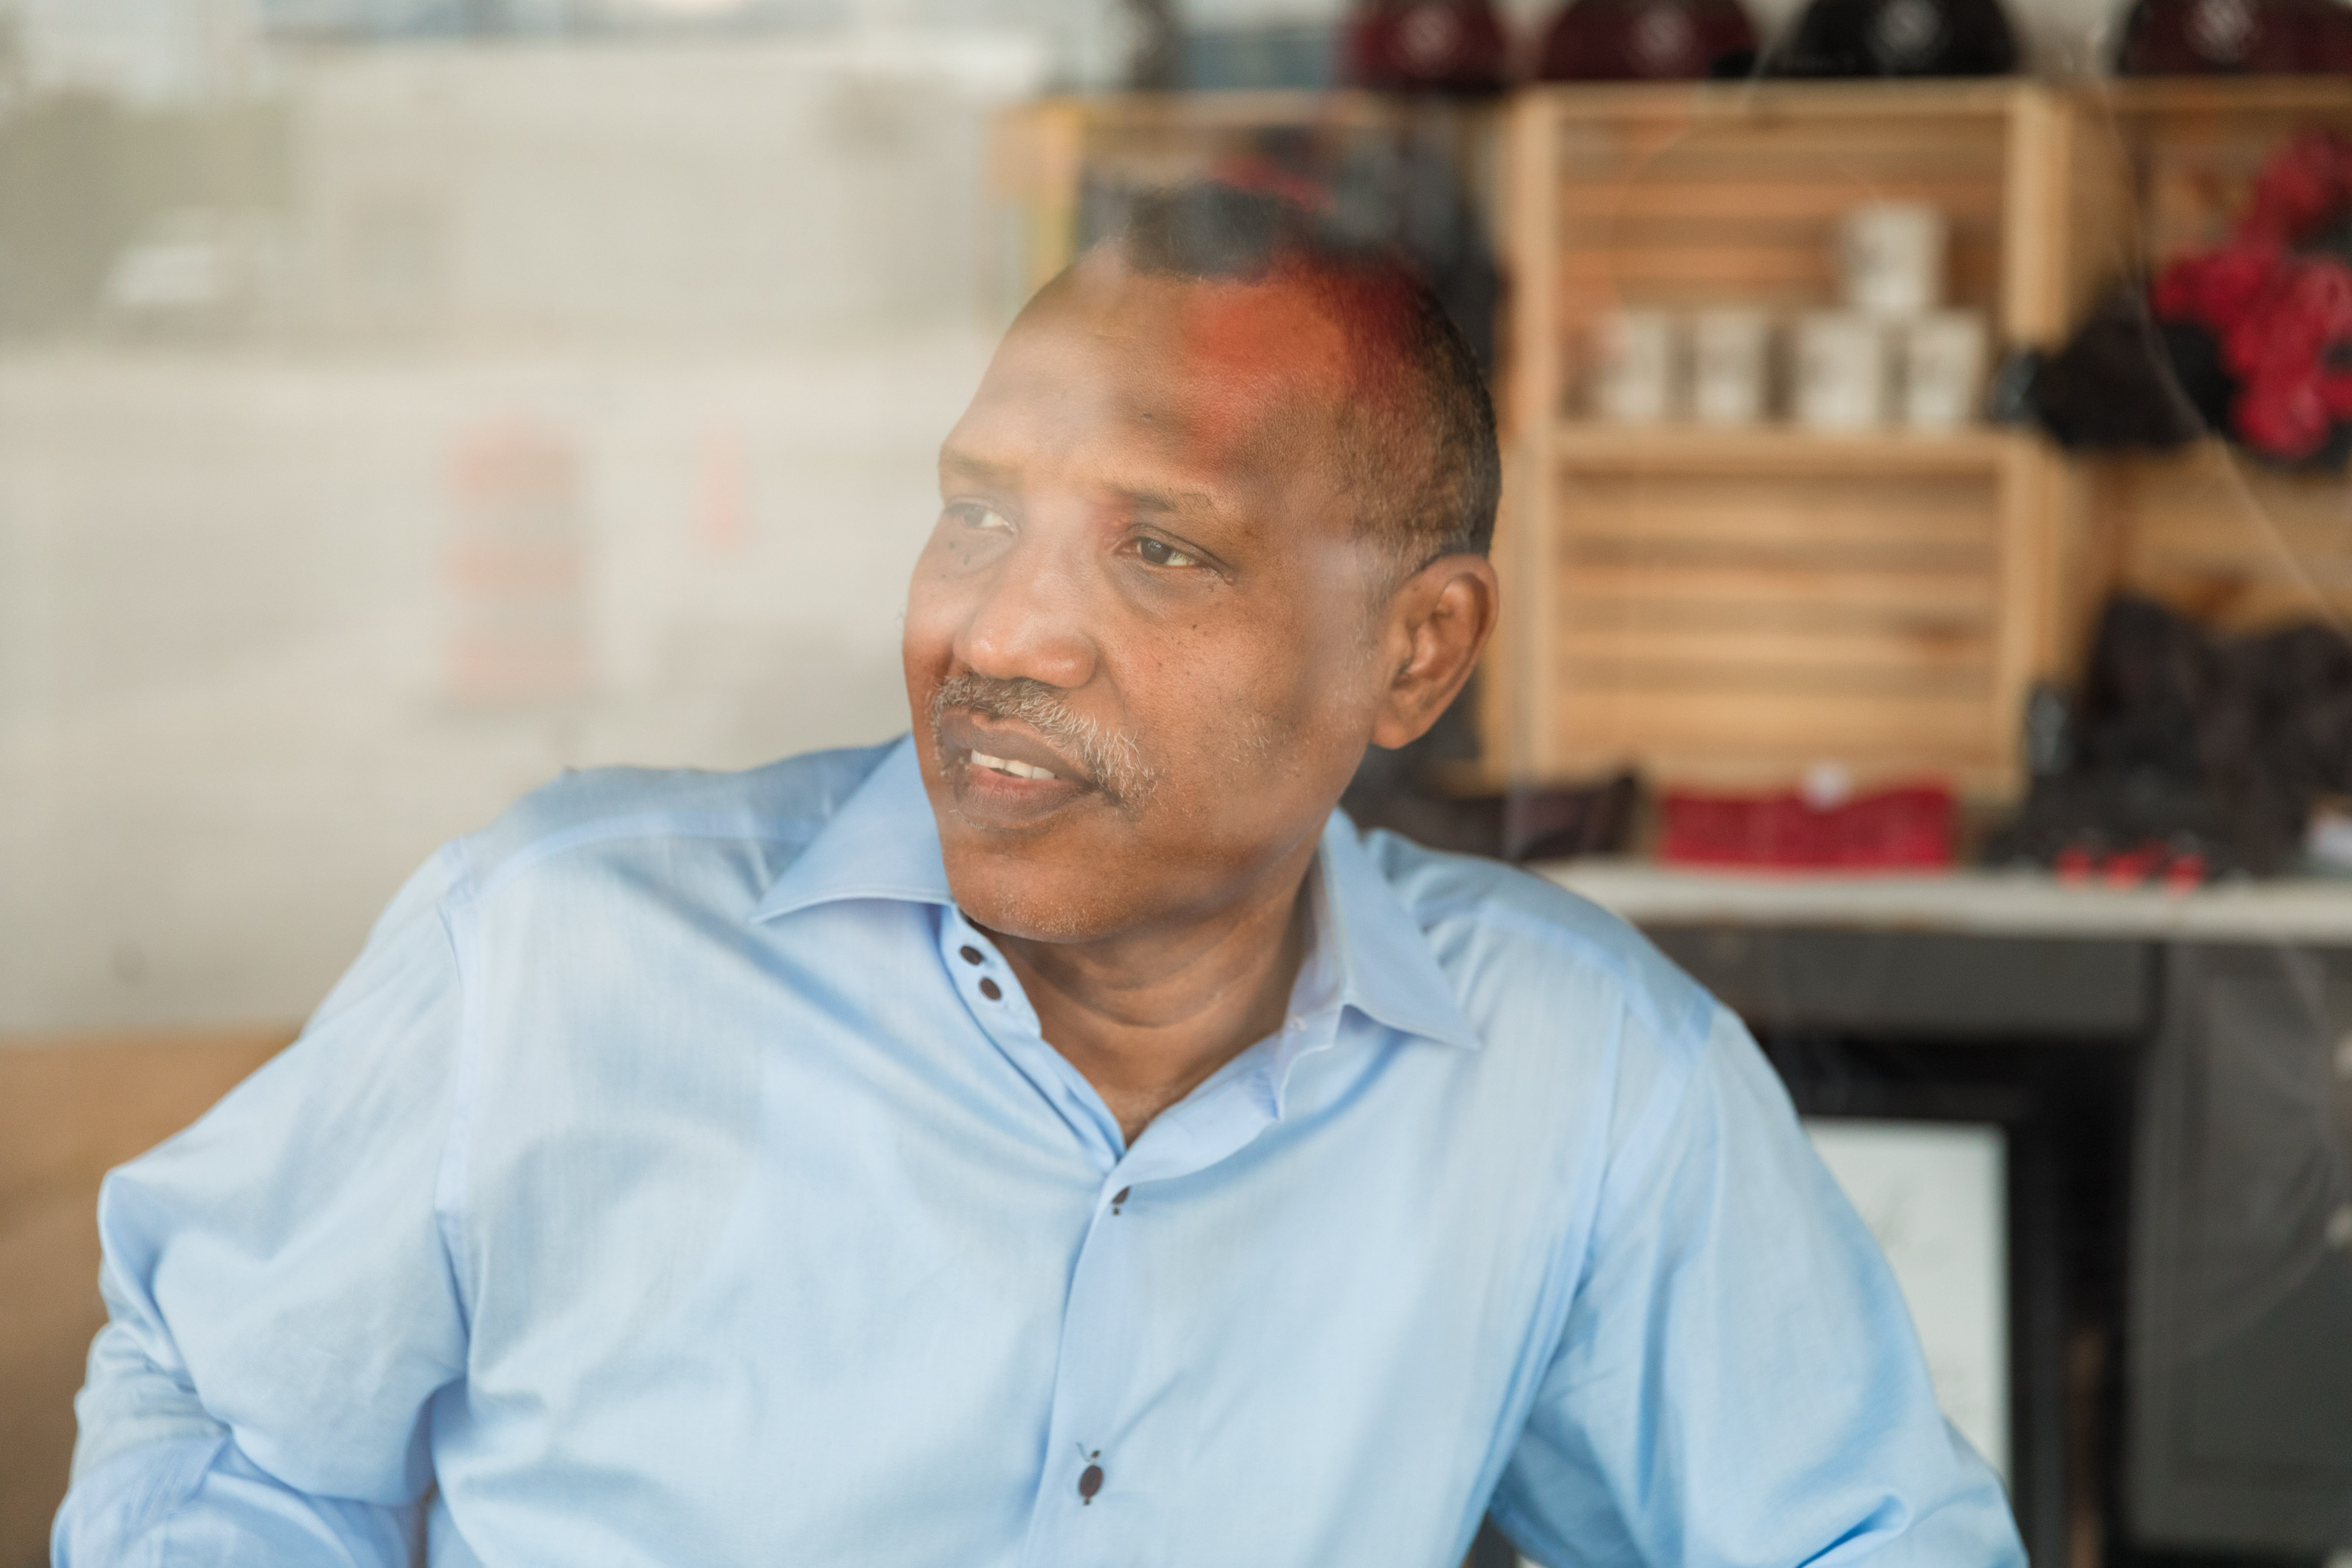 Omar Shekhey, executive director of the Somali American Community Center, shares the story of his organization and the kinship of Clarkston, Ga. Lynsey Weatherspoon for The Intercept